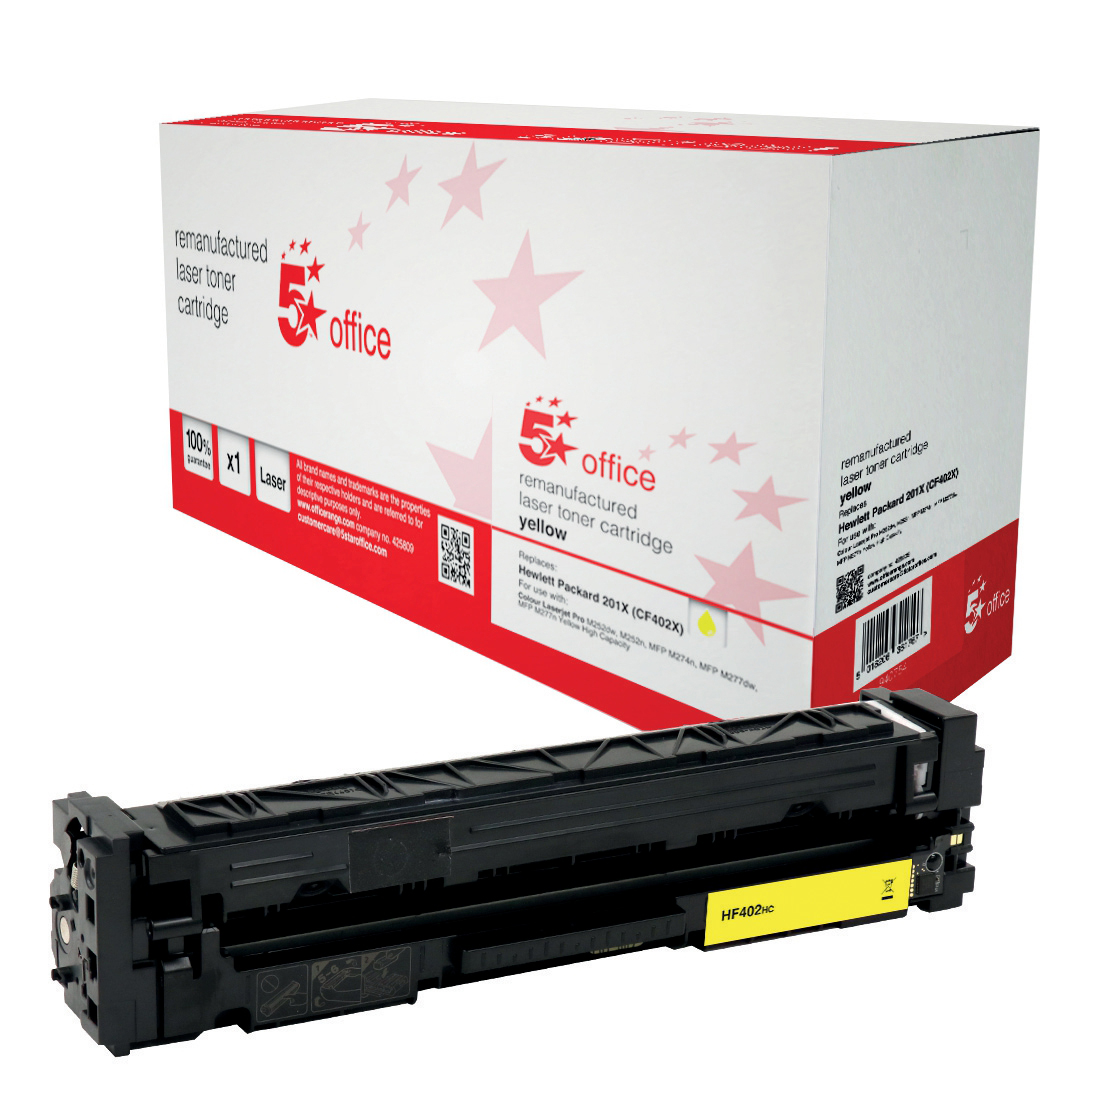 Laser Toner Cartridges 5 Star Office Remanufactured Laser Toner Cart Page Life 2300pp HY Yellow HP 201X CF402X Alternative